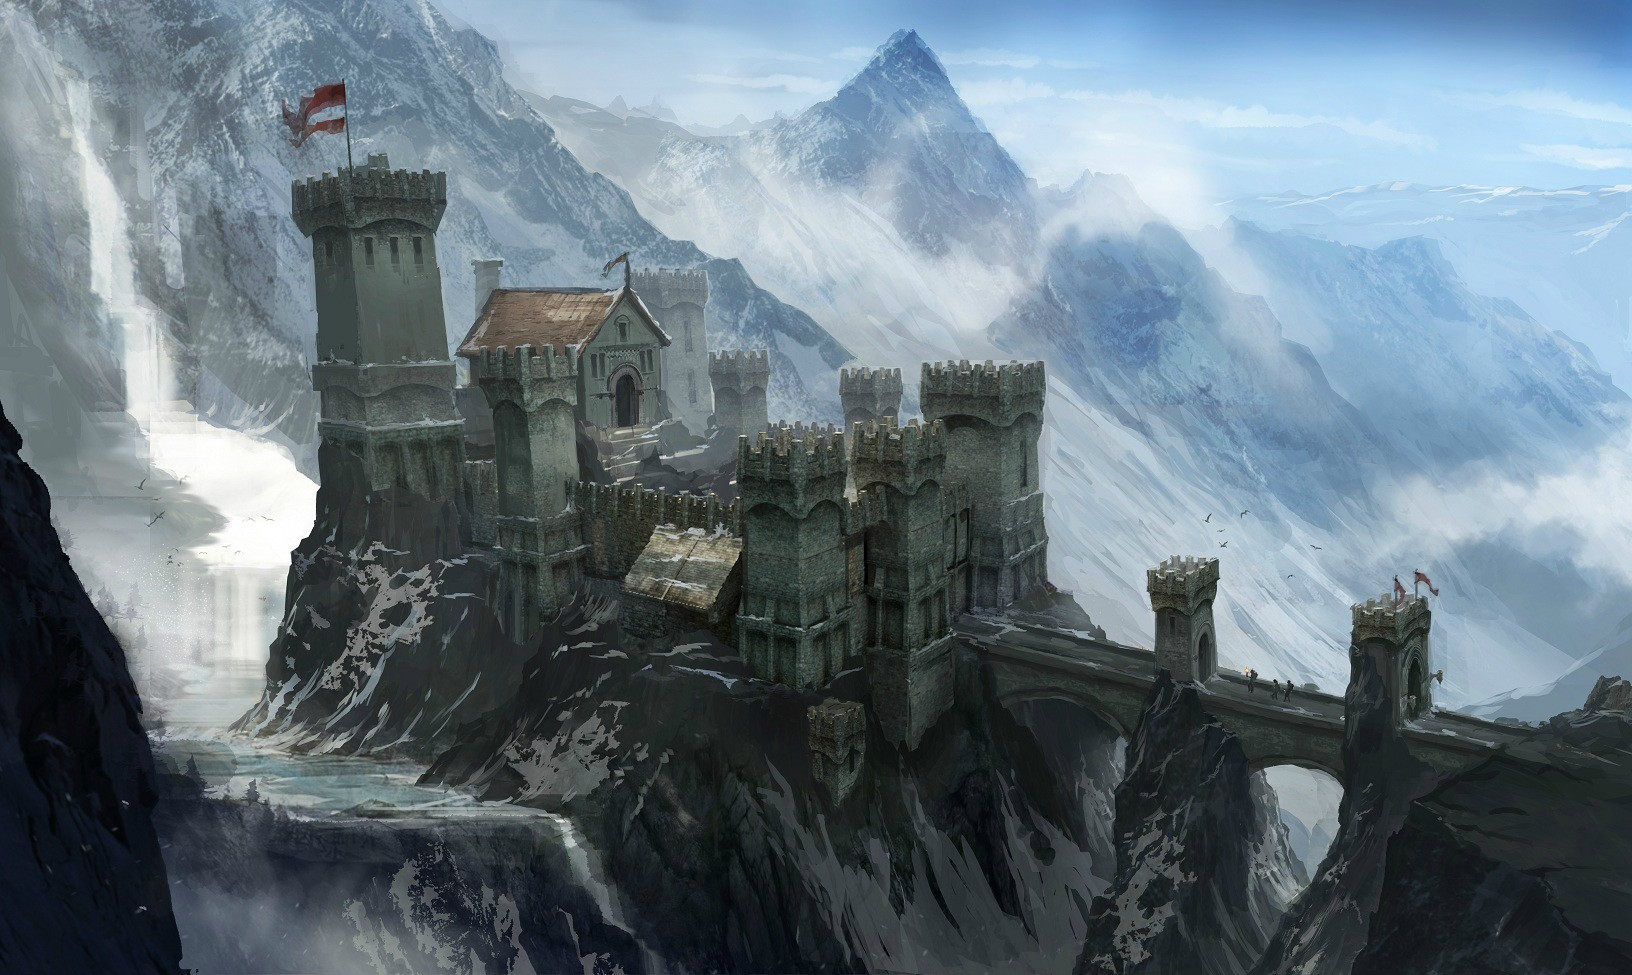 Dragon Age Bioware Video Games Rpg Fantasy Art: More Details And Concept Art Revealed For Dragon Age III